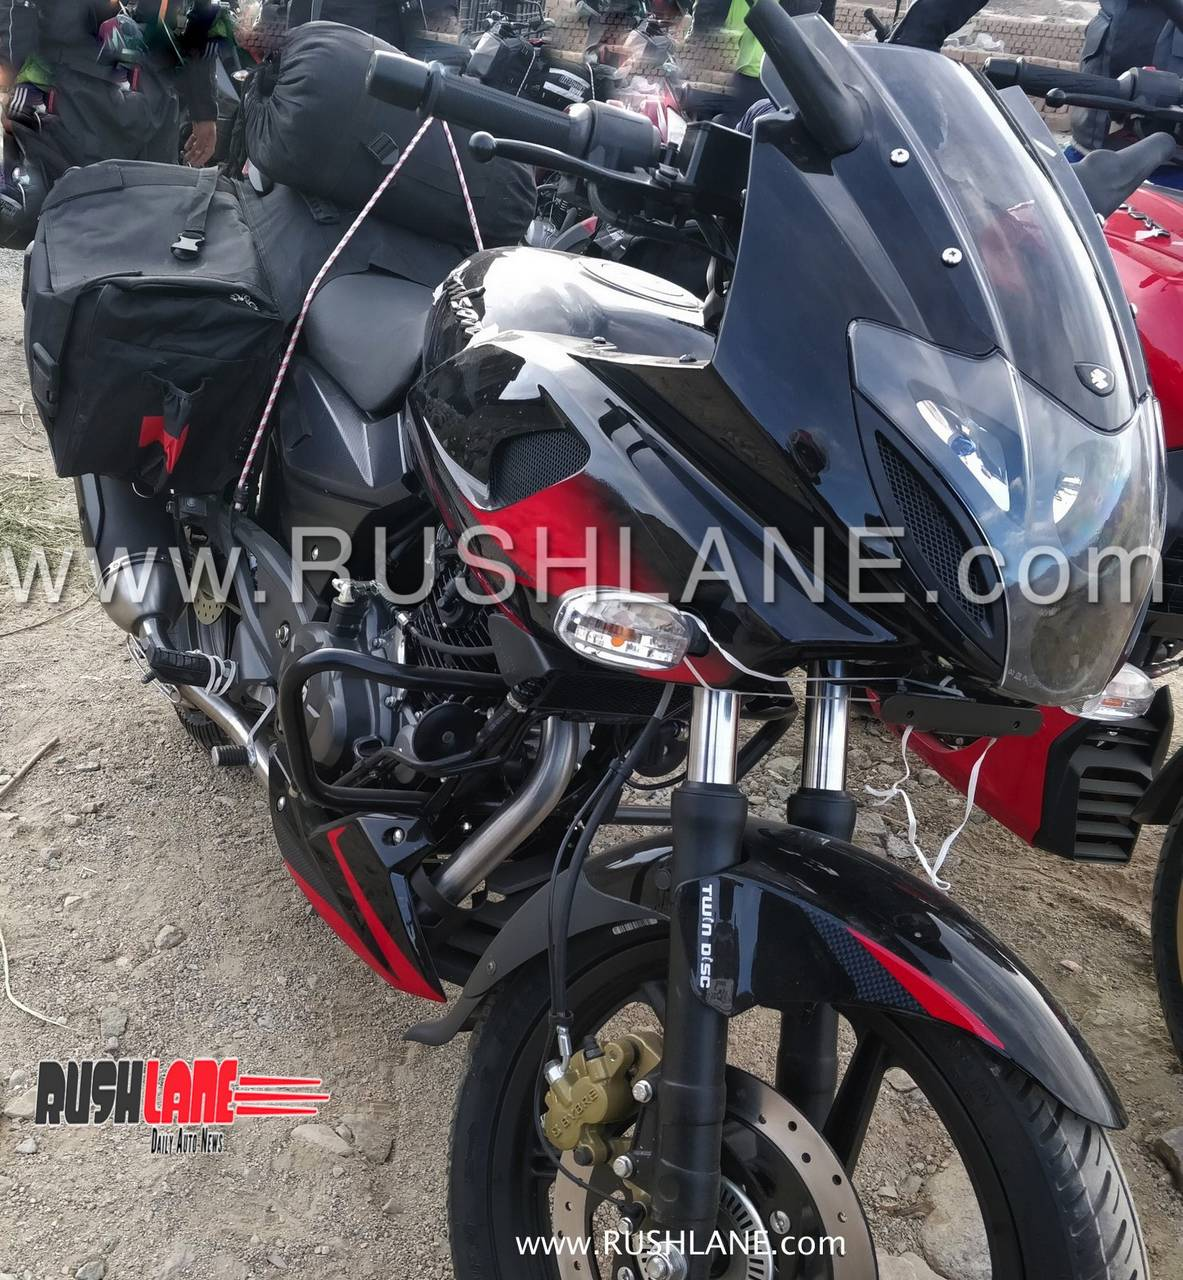 2019 bajaj pulsar 220f abs launch soon spied for the first time